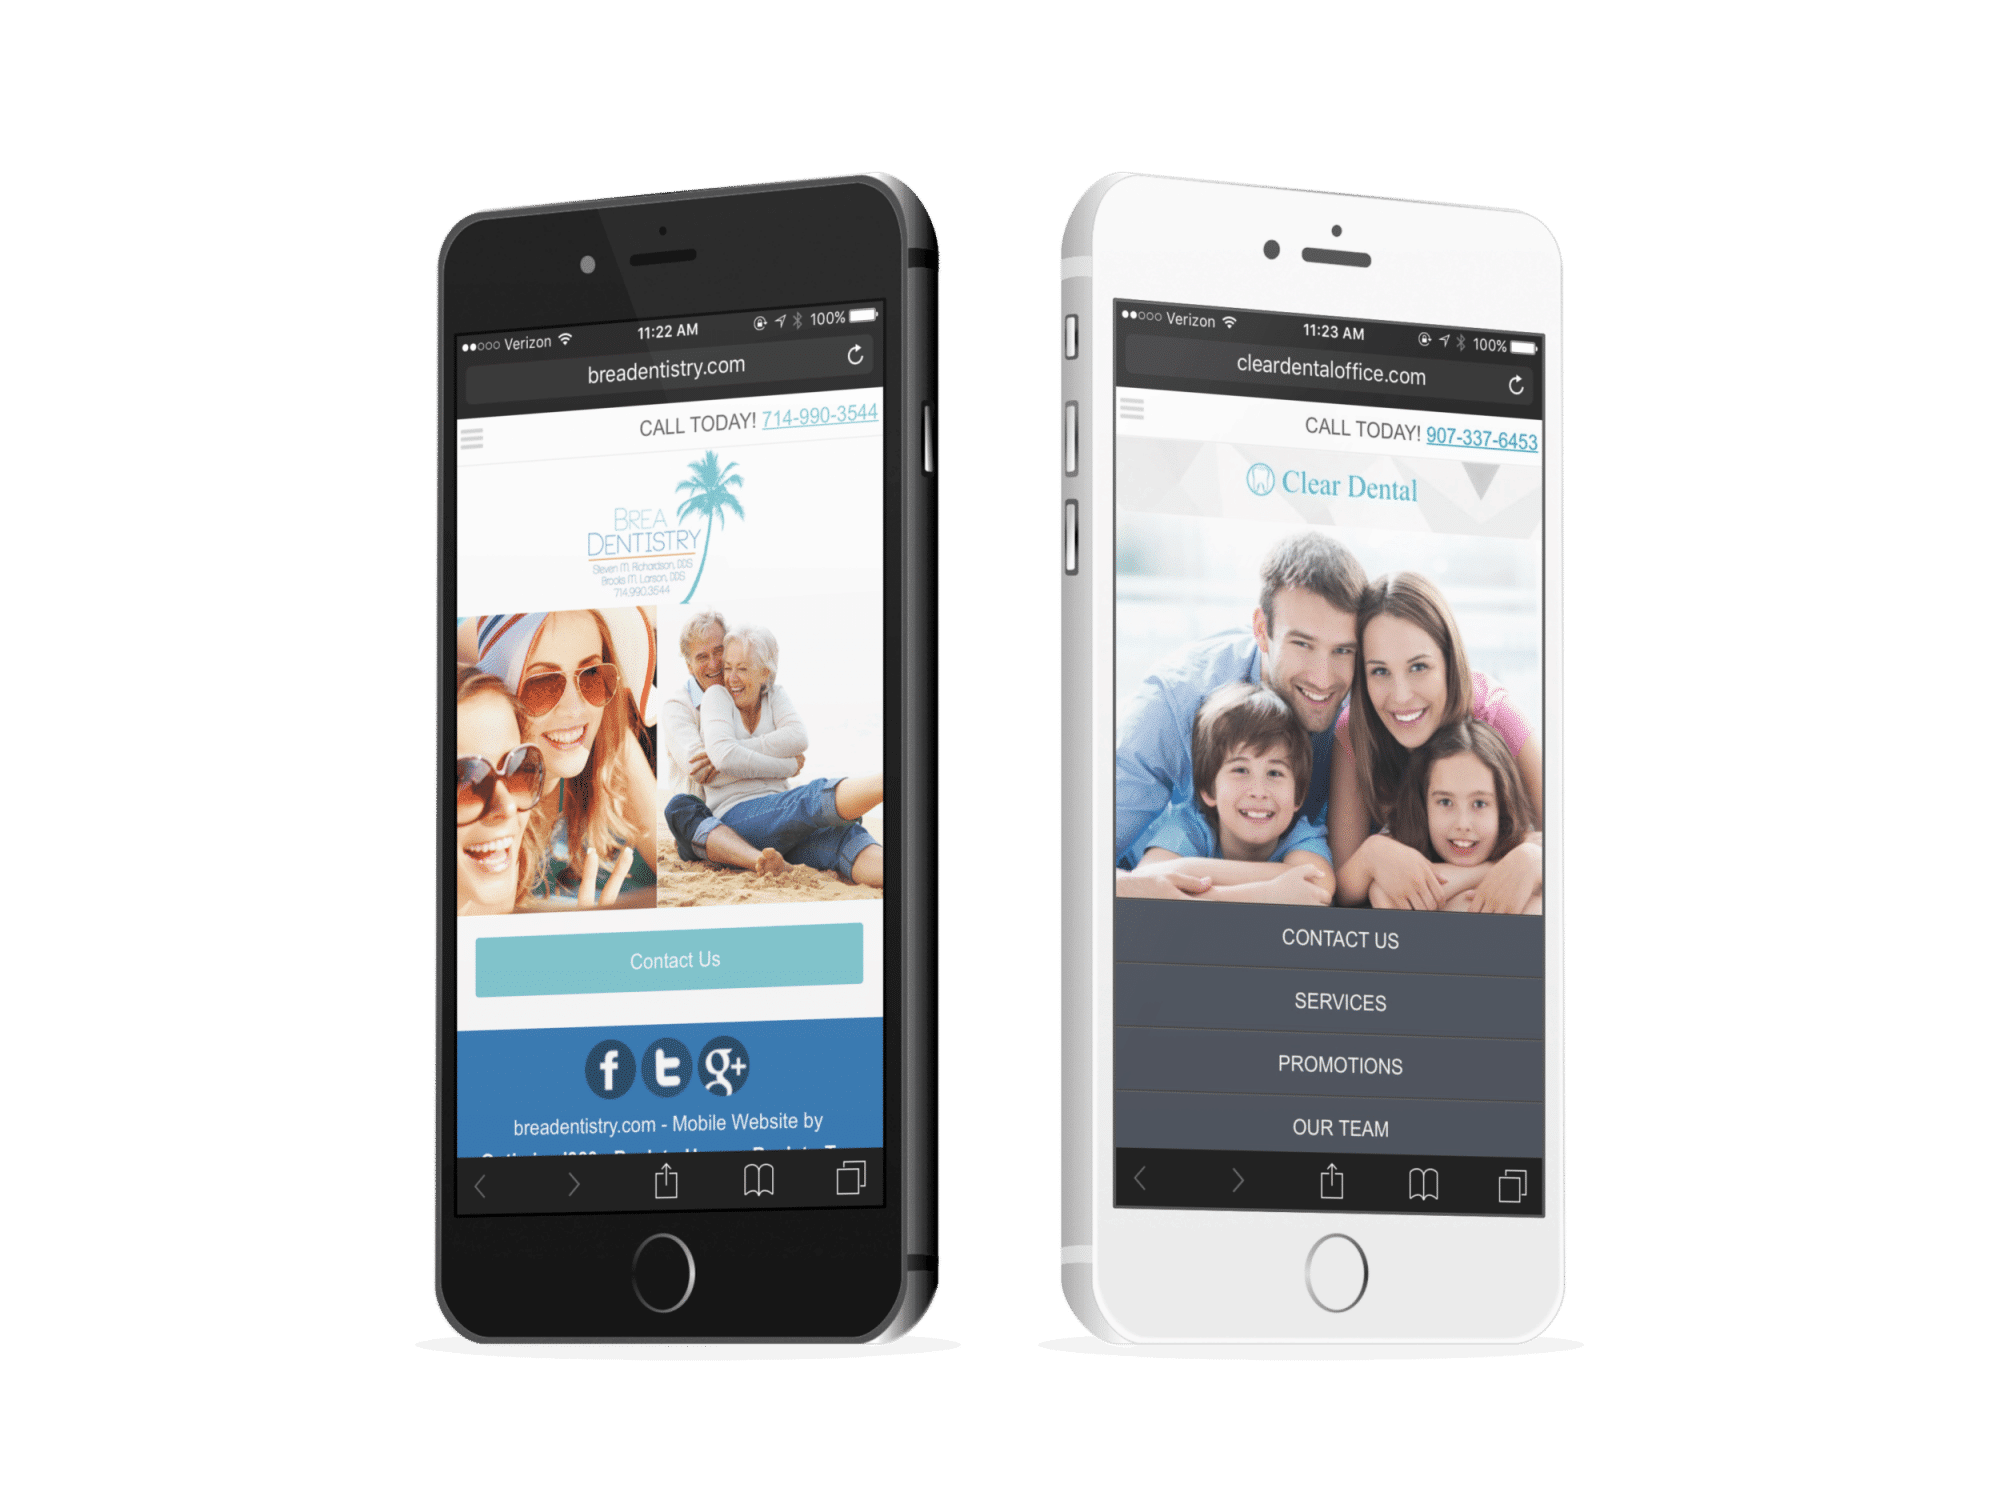 Family Dentistry And Cosmetic Dentist Mobile Websites On Two Iphones